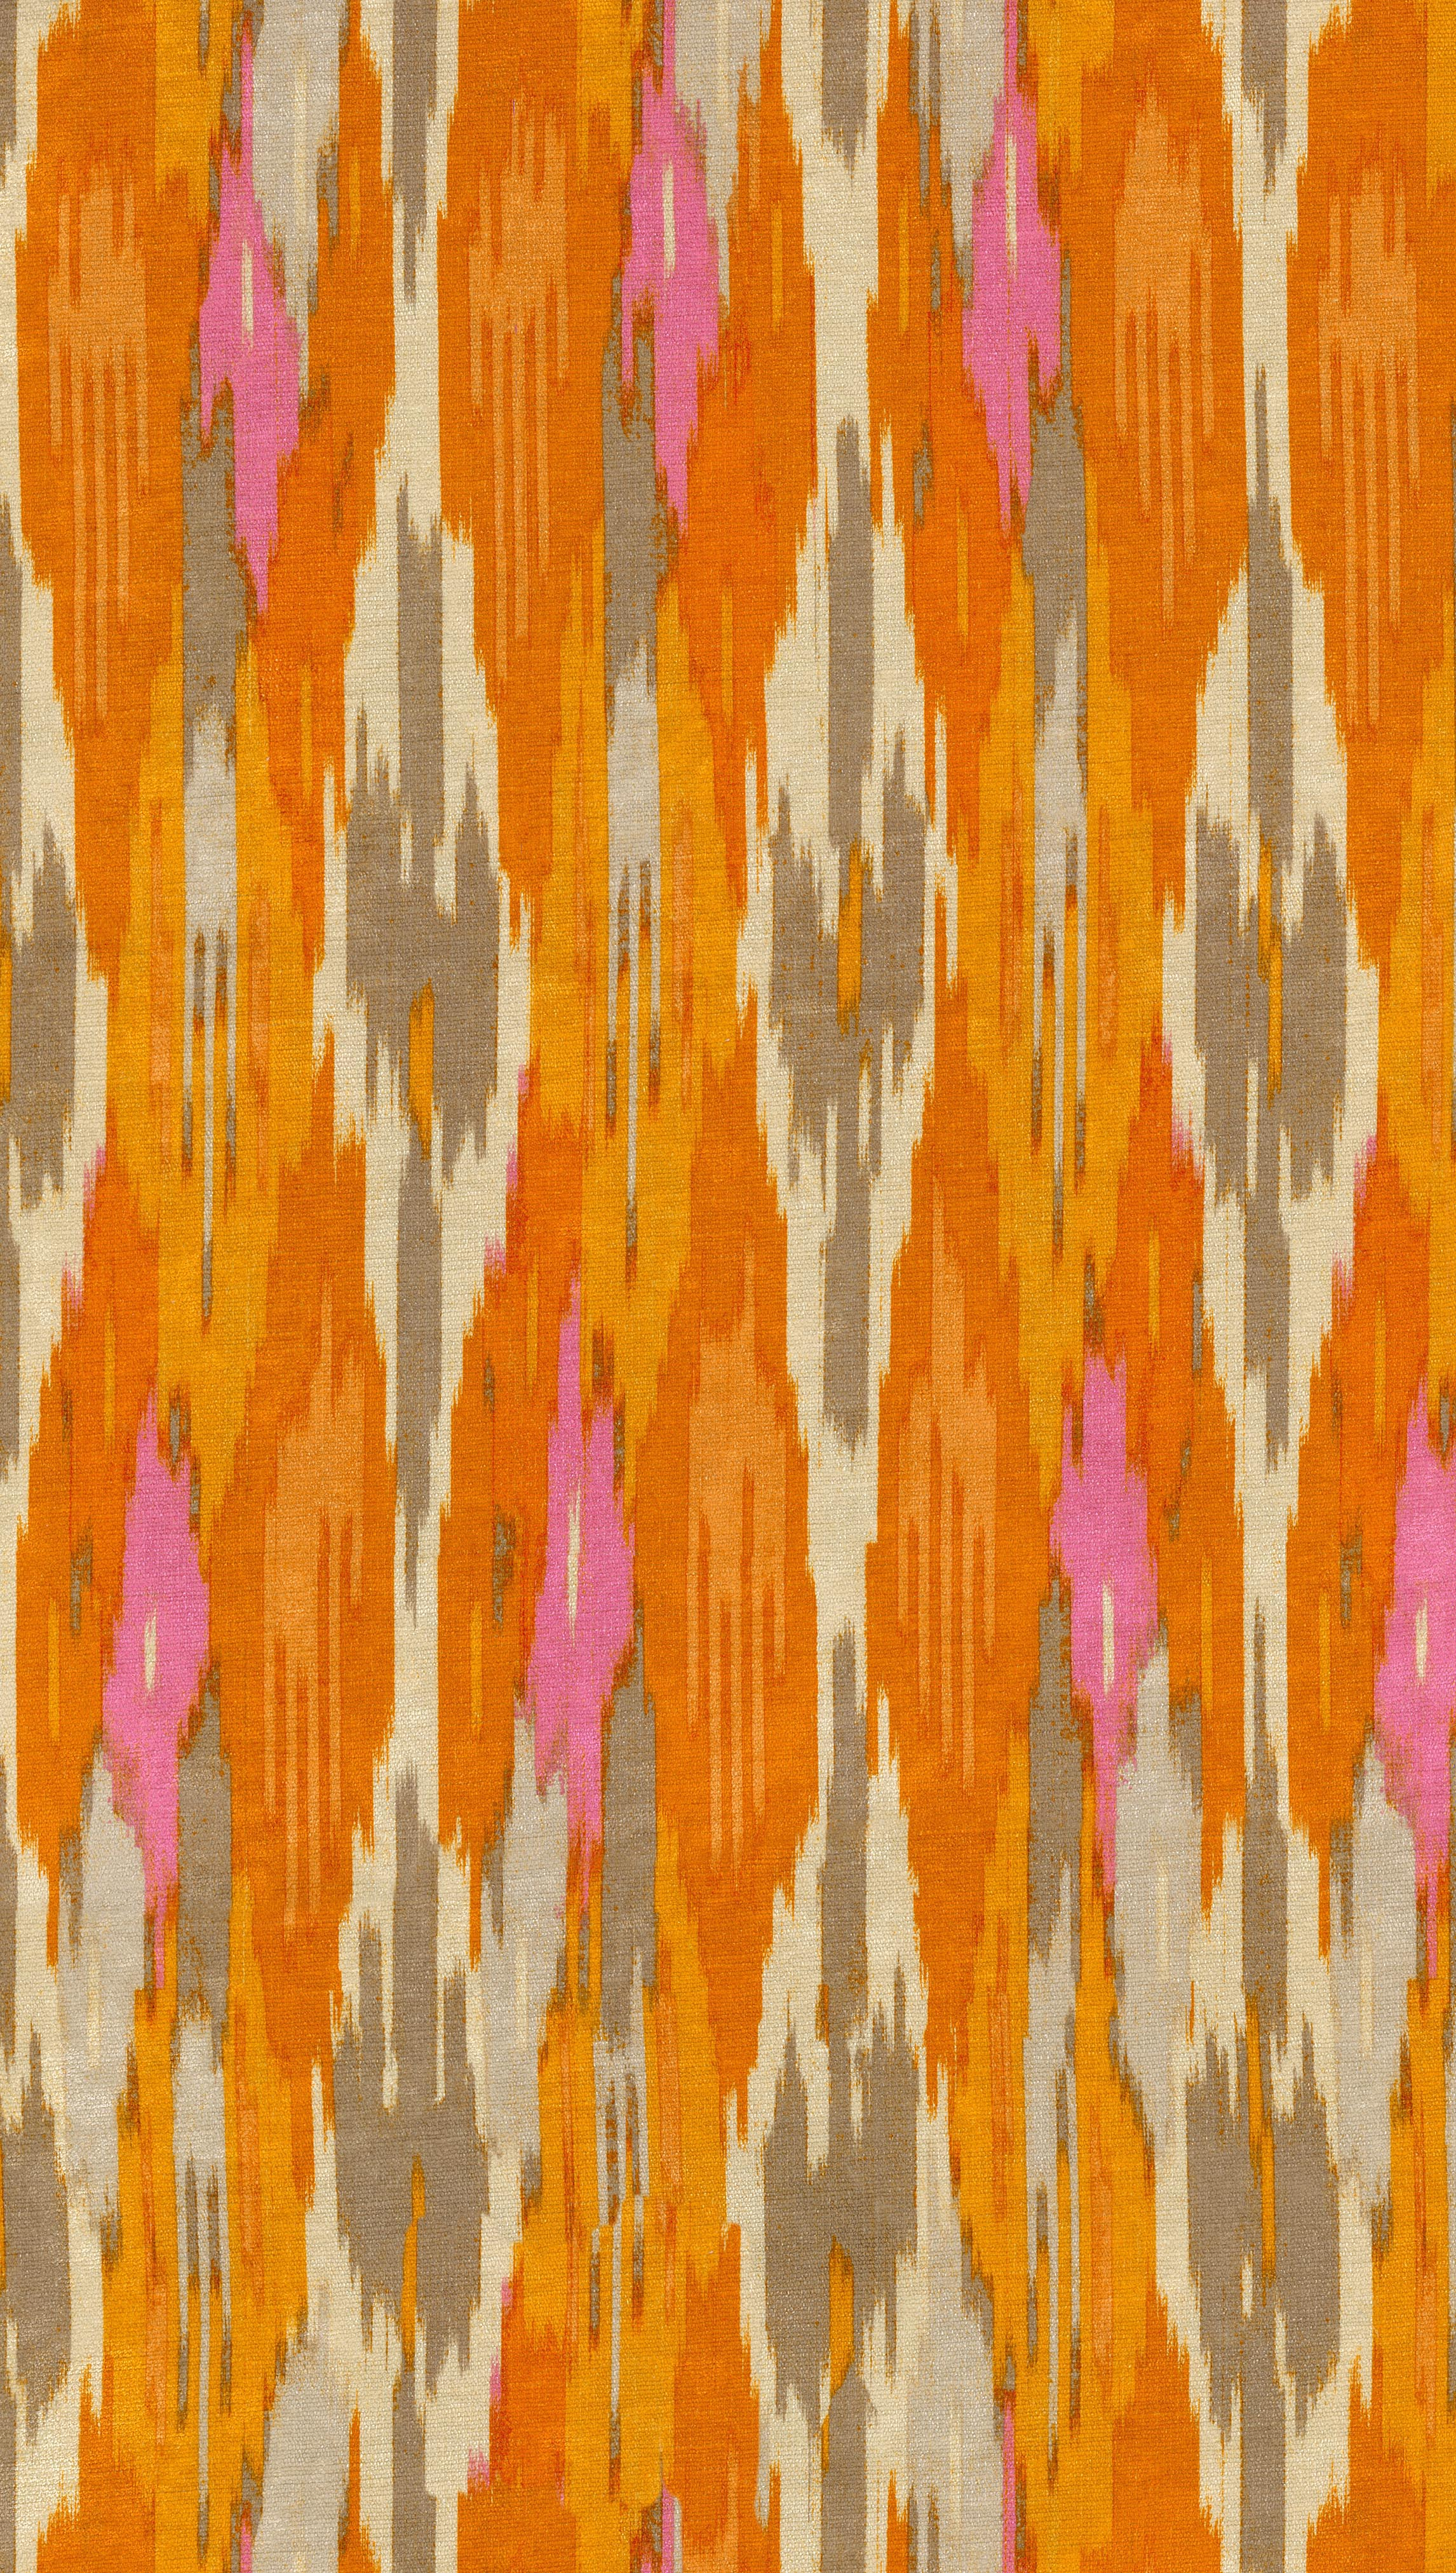 Home Decor 8\u0022x8\u0022 Fabric Swatch-IMAN Painted Pavilion Nectar